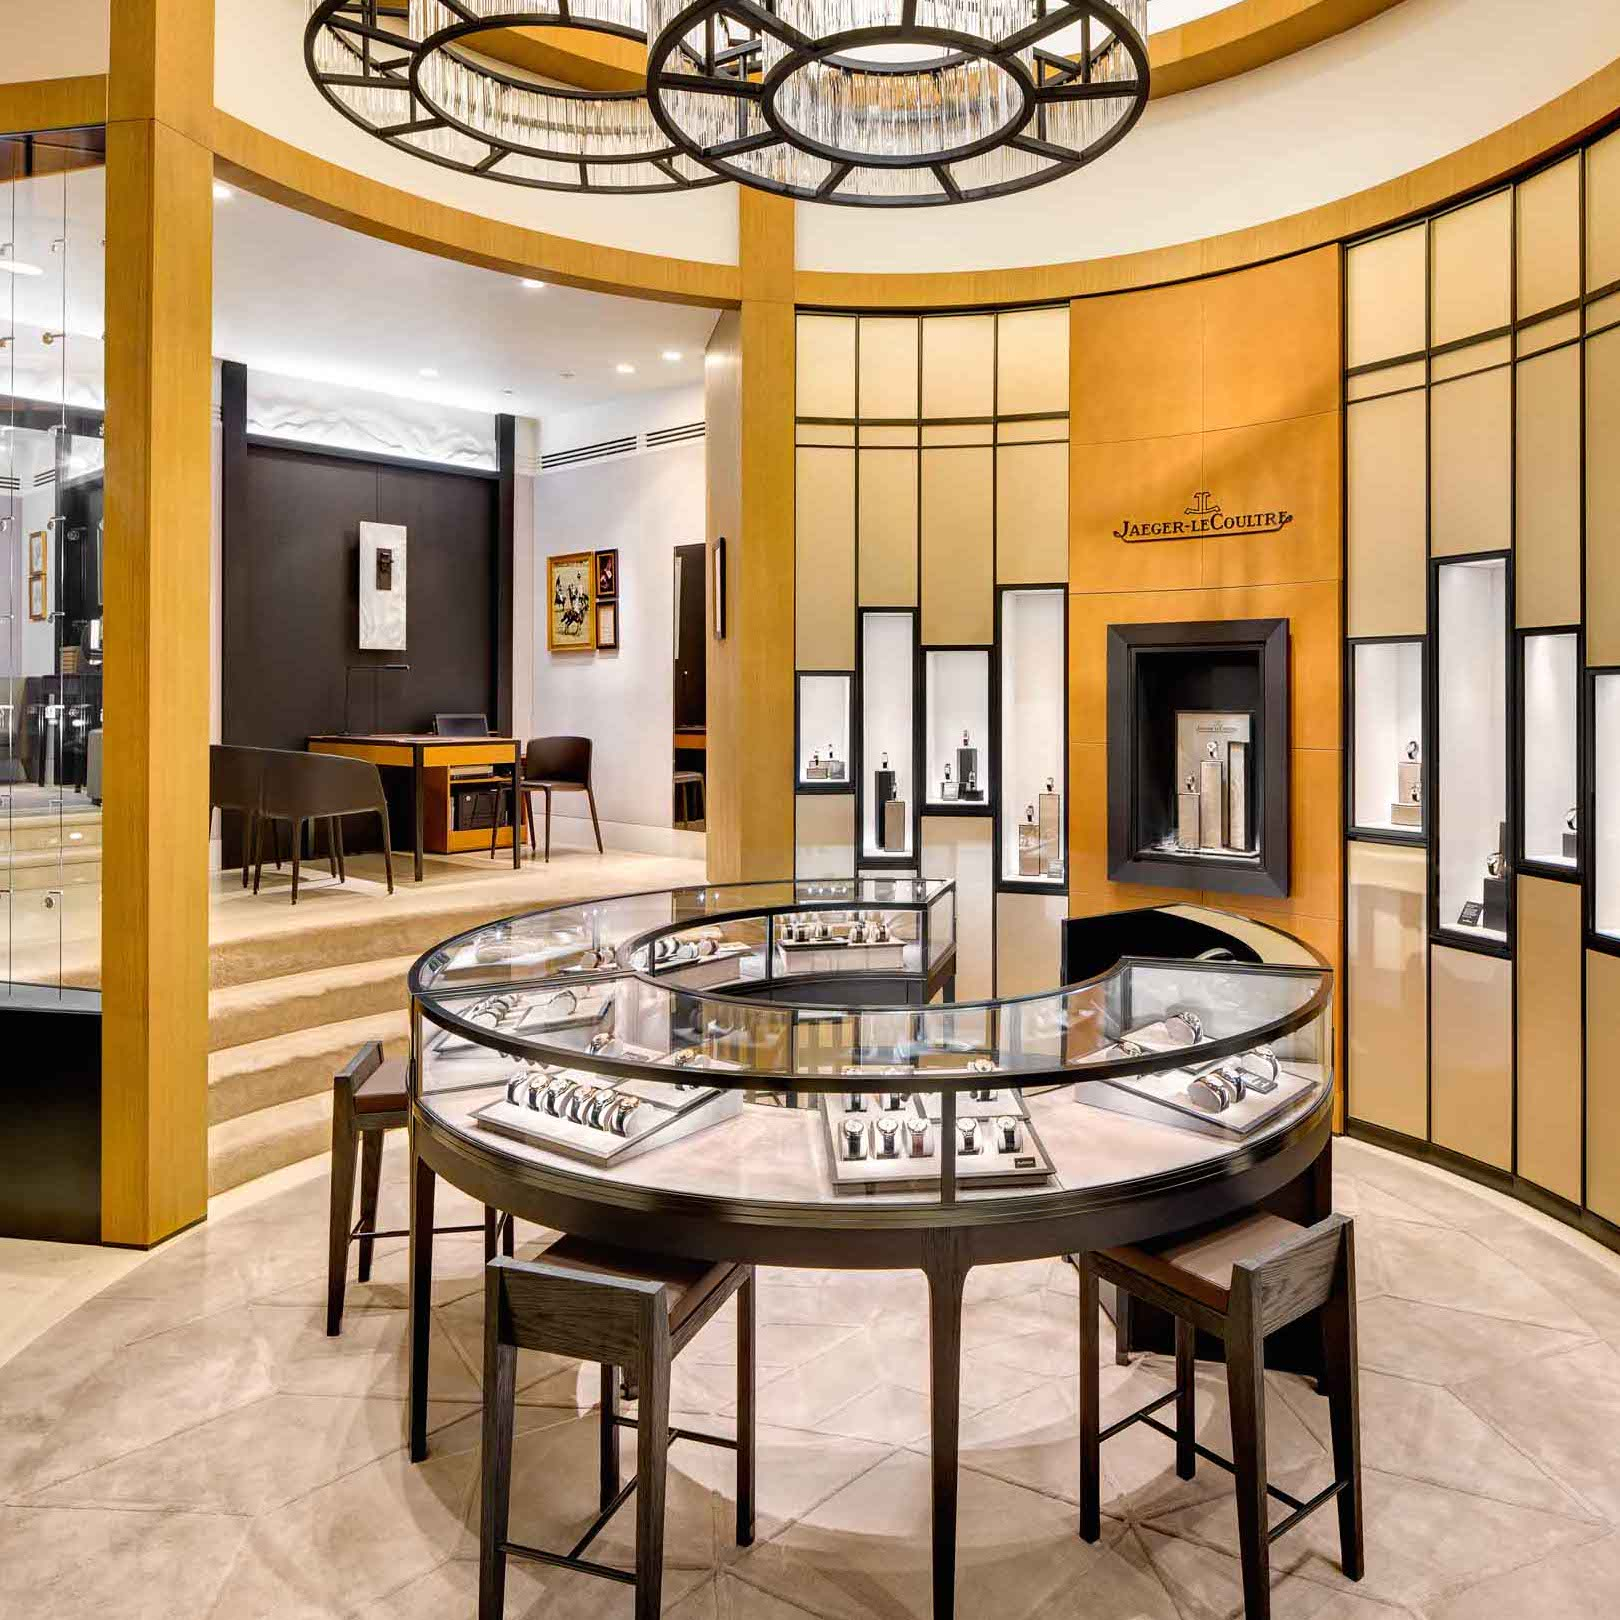 Jaeger-LeCoultre-New-York-Boutique-flagship-21